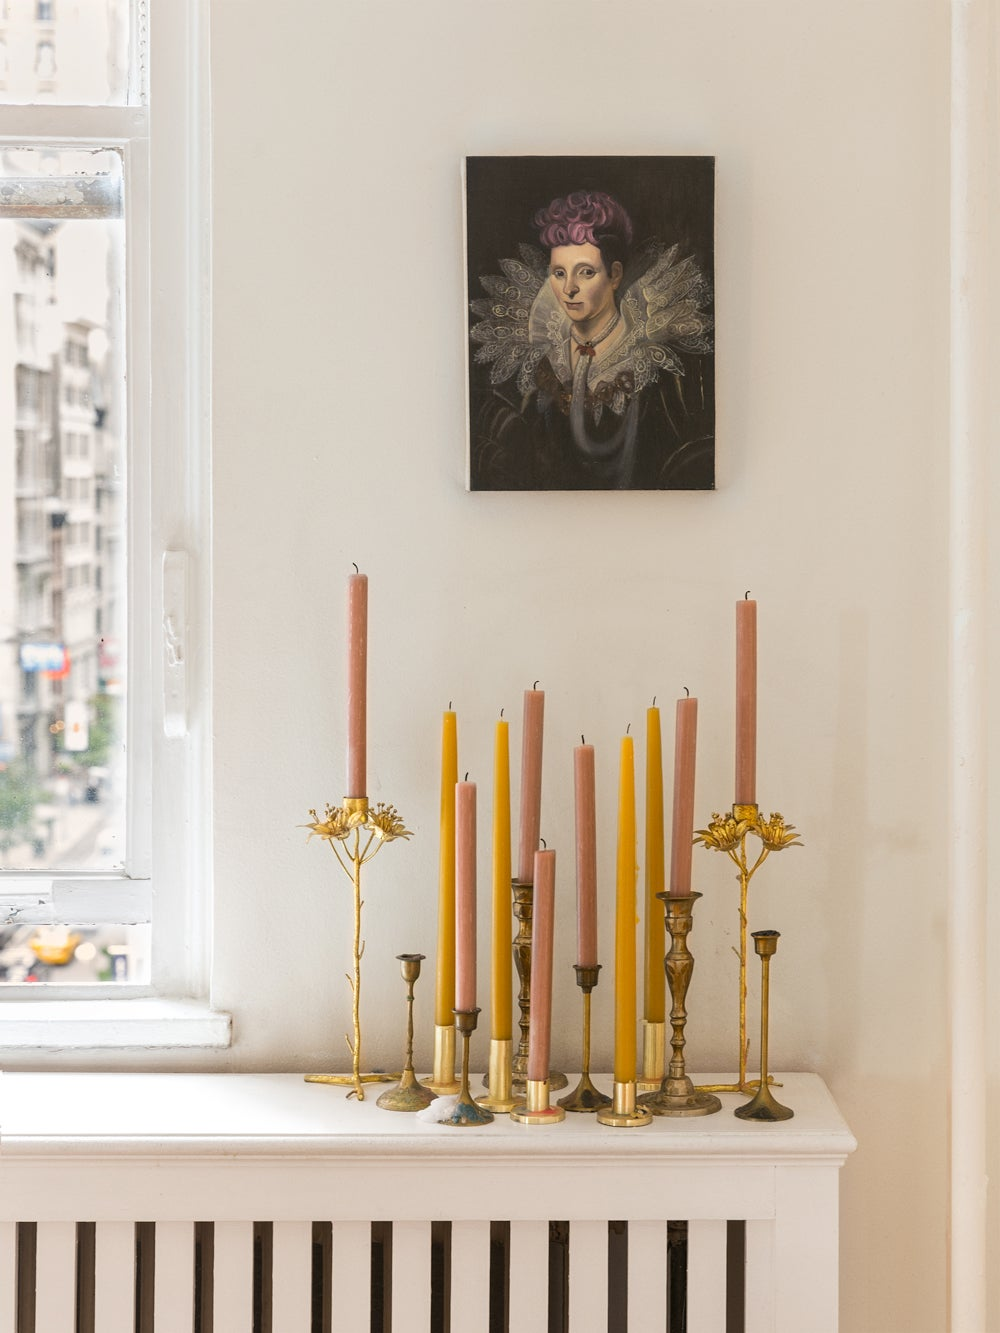 Taper candles on a ledge